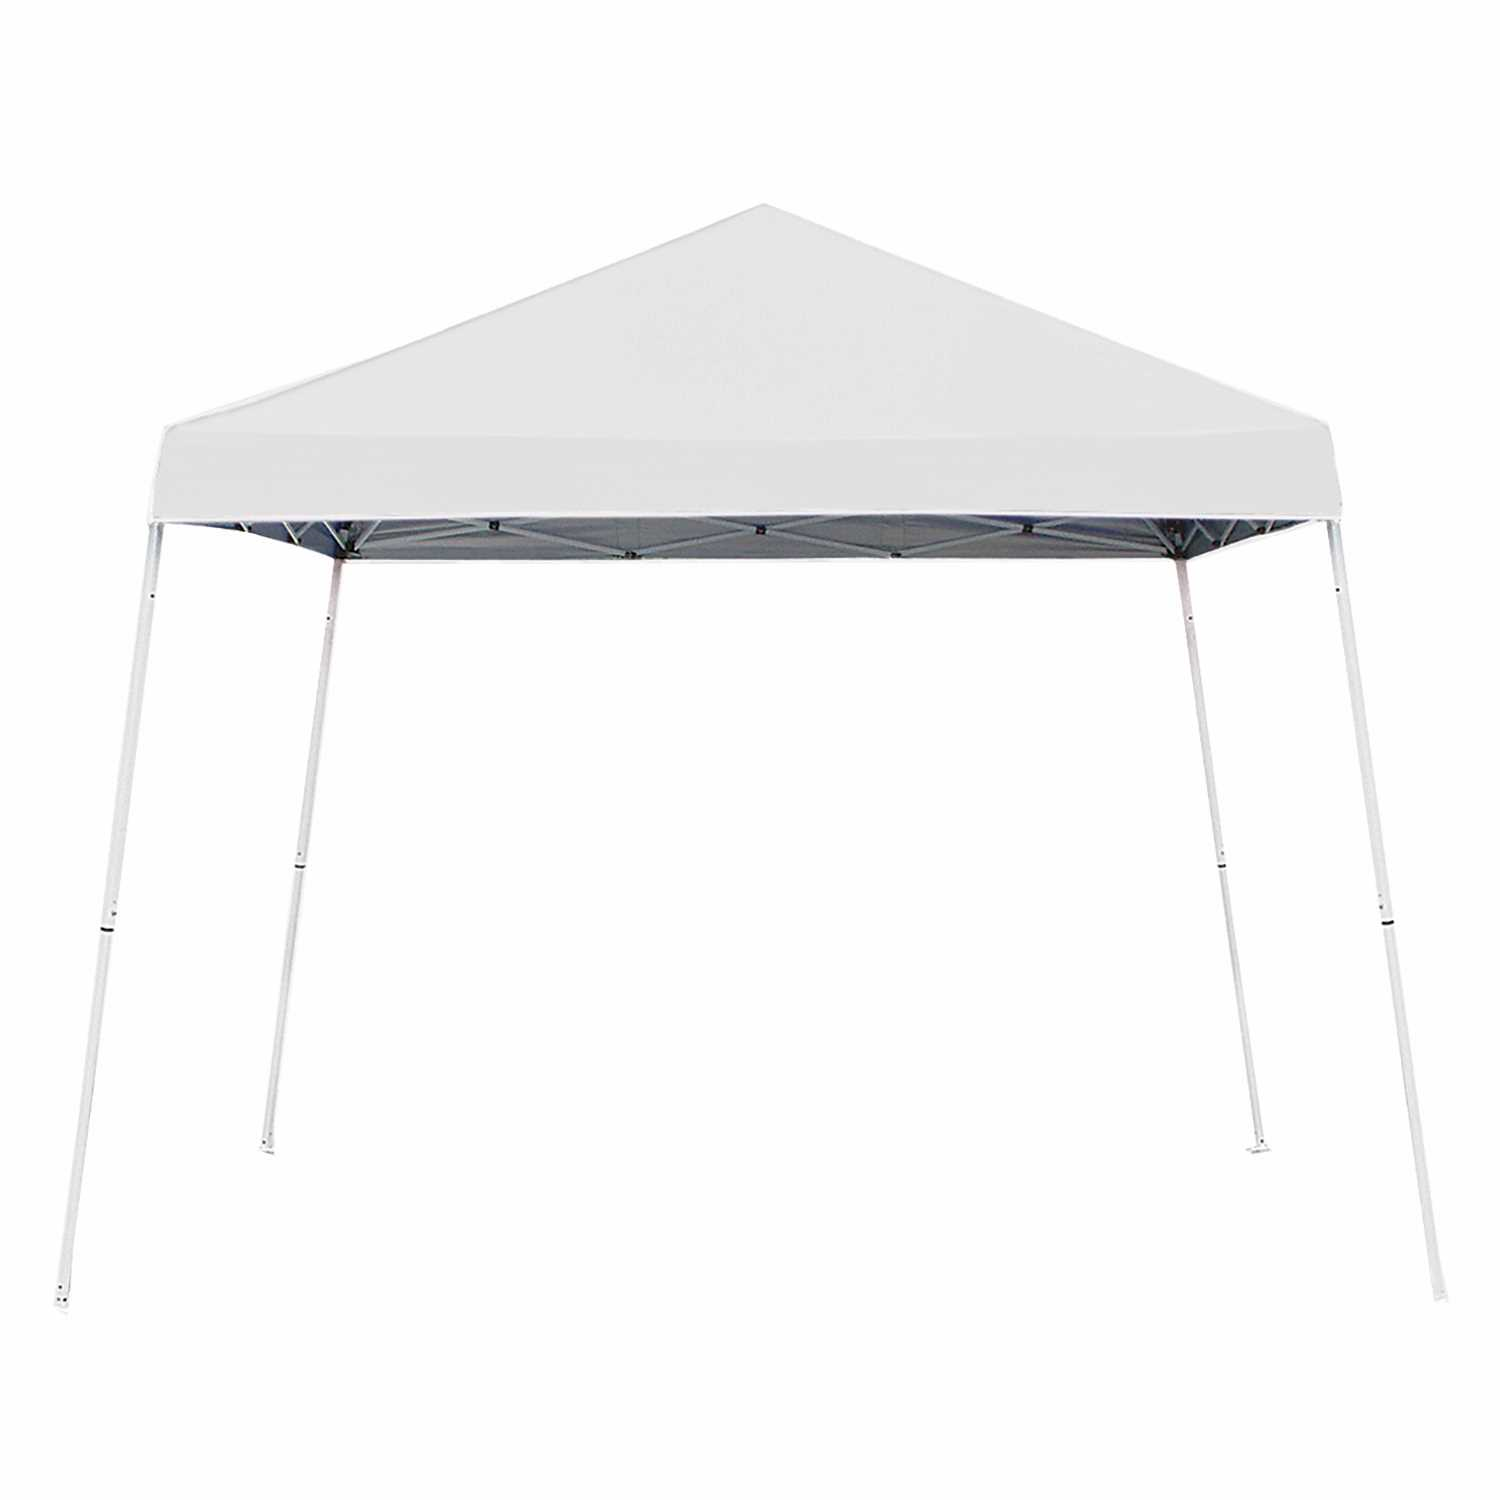 Z Shade 10' x 10' Outdoor Outdoor 10' Portable Weiß Canopy Tent + Screen Shelter Attachment 19d9ce